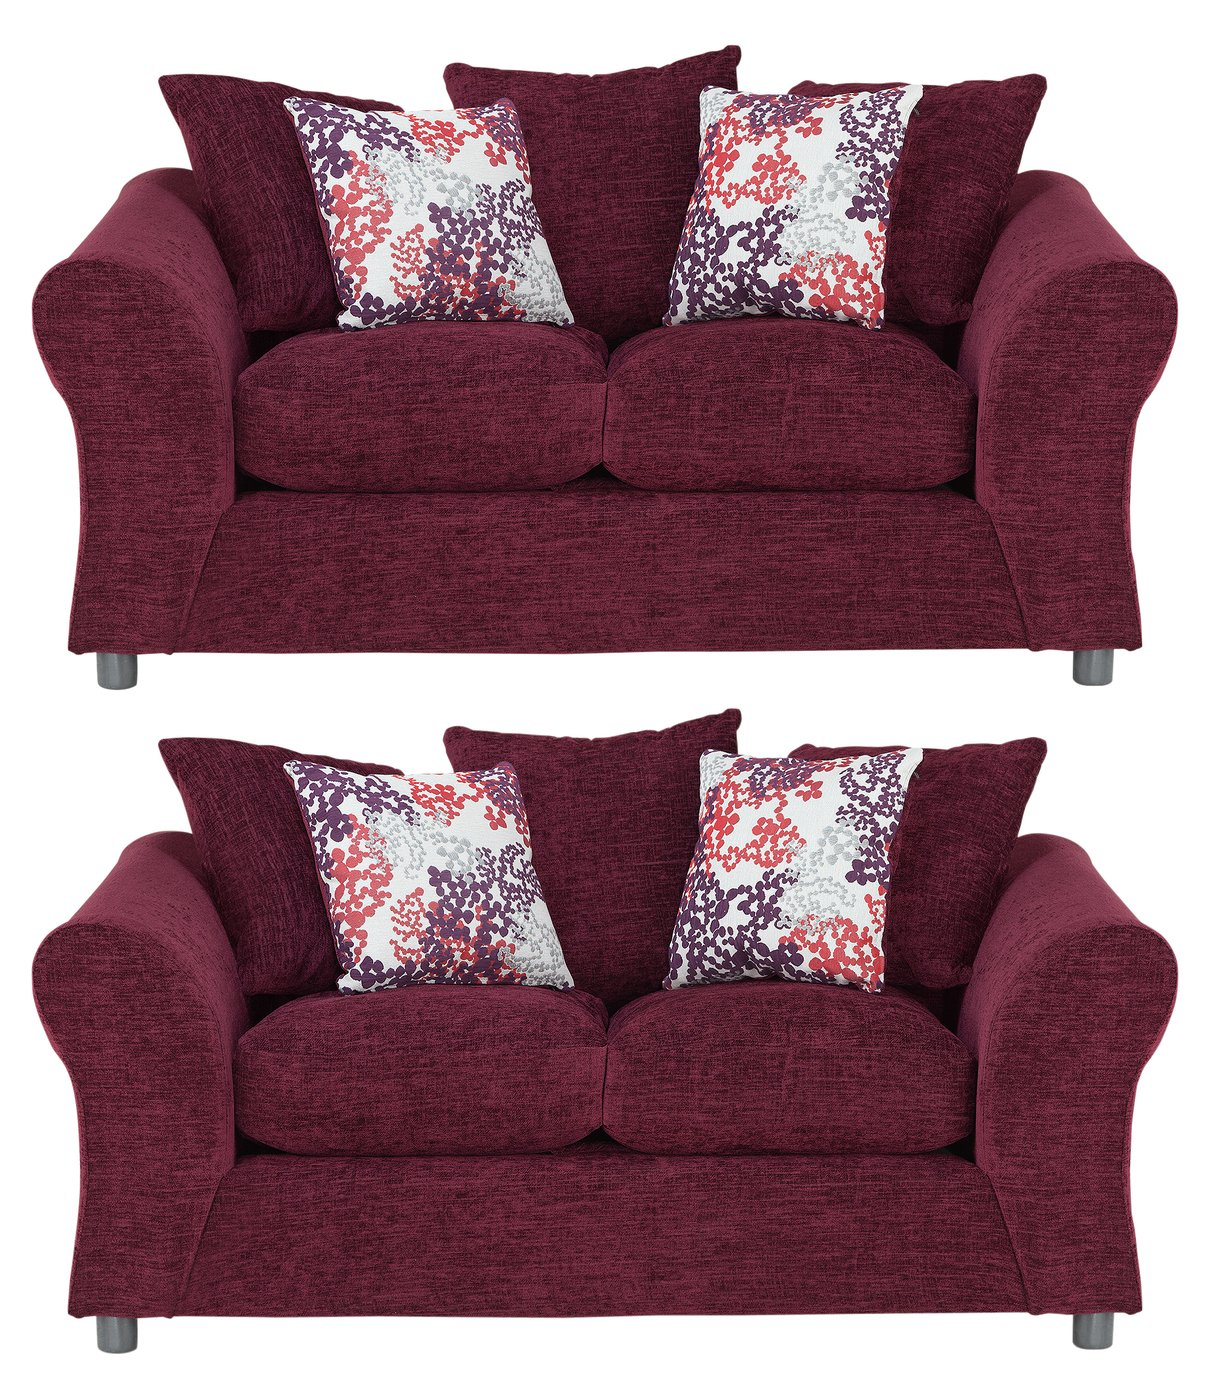 Argos Home - Clara Regular and Regular Fabric - Sofa - Plum